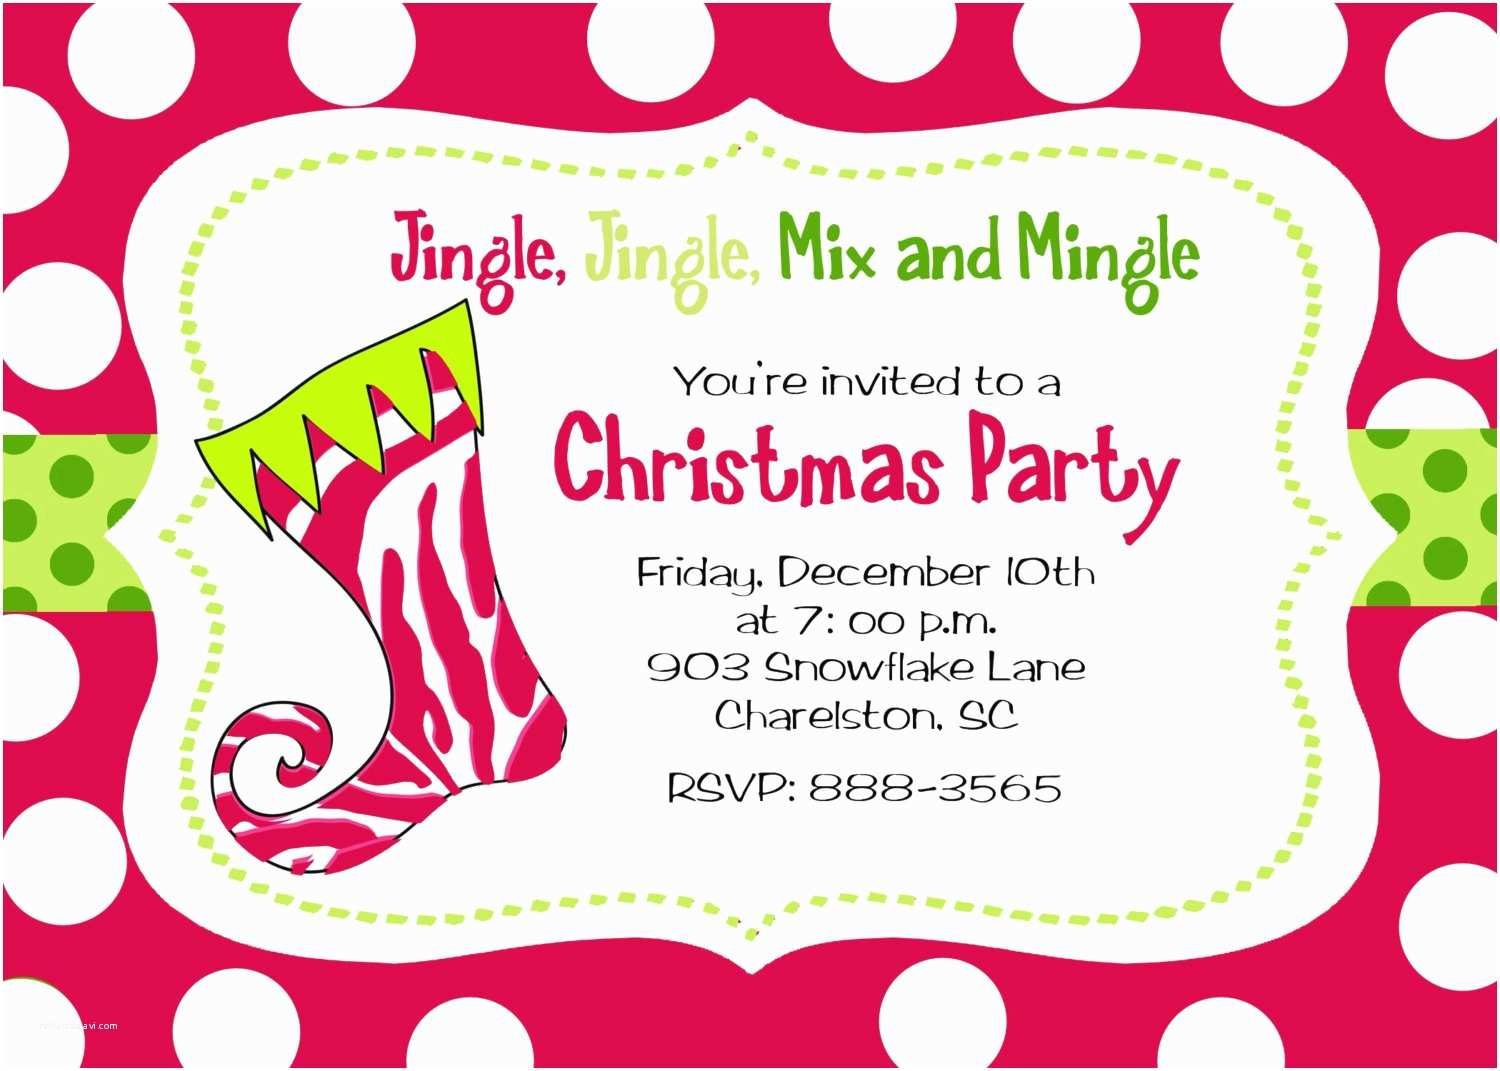 Sample Christmas Party Invitation Christmas Party Invitation